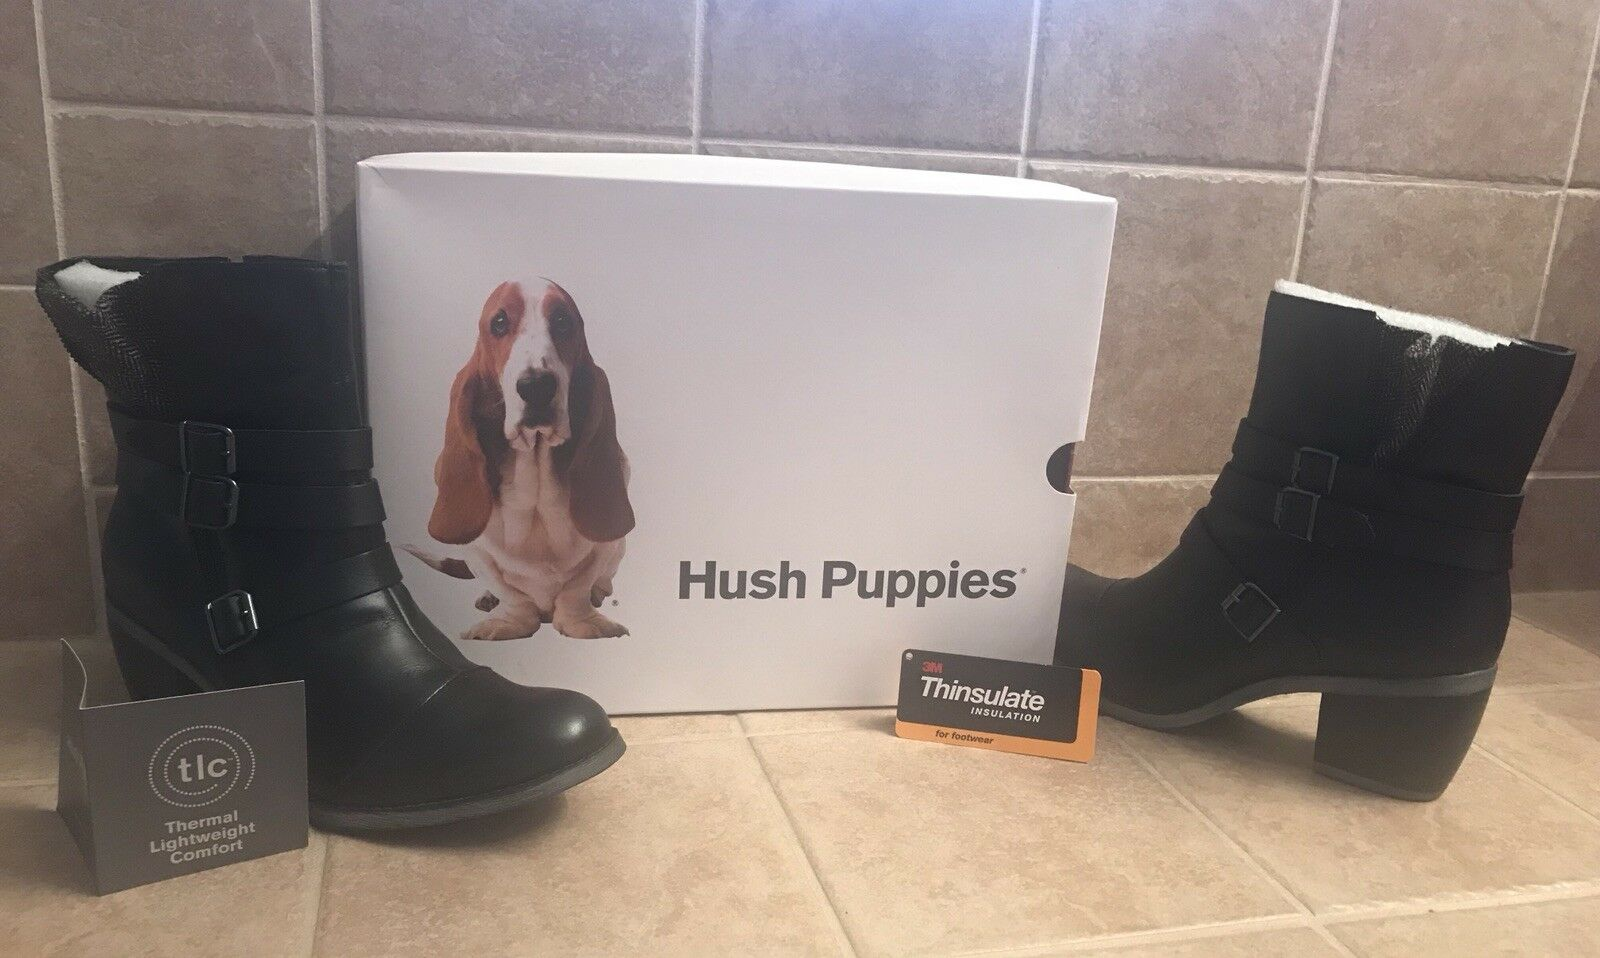 HUSH PUPPIES WP RUSTIQUE ANKLE Stiefel BLACK WP PUPPIES LEATHER INSULATED WATERPROOF 10 b3753f